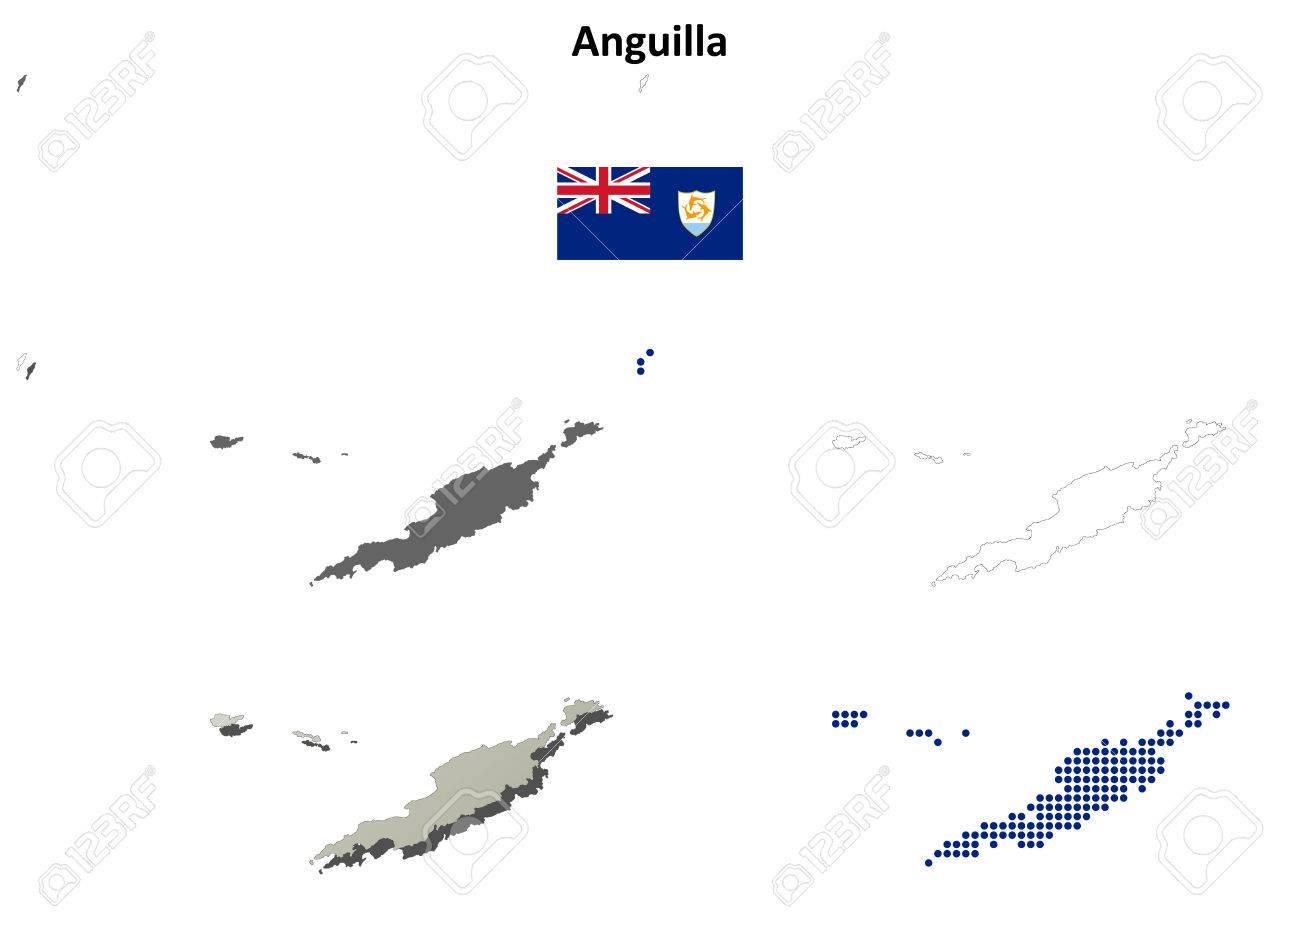 Anguilla blank detailed vector outline map set